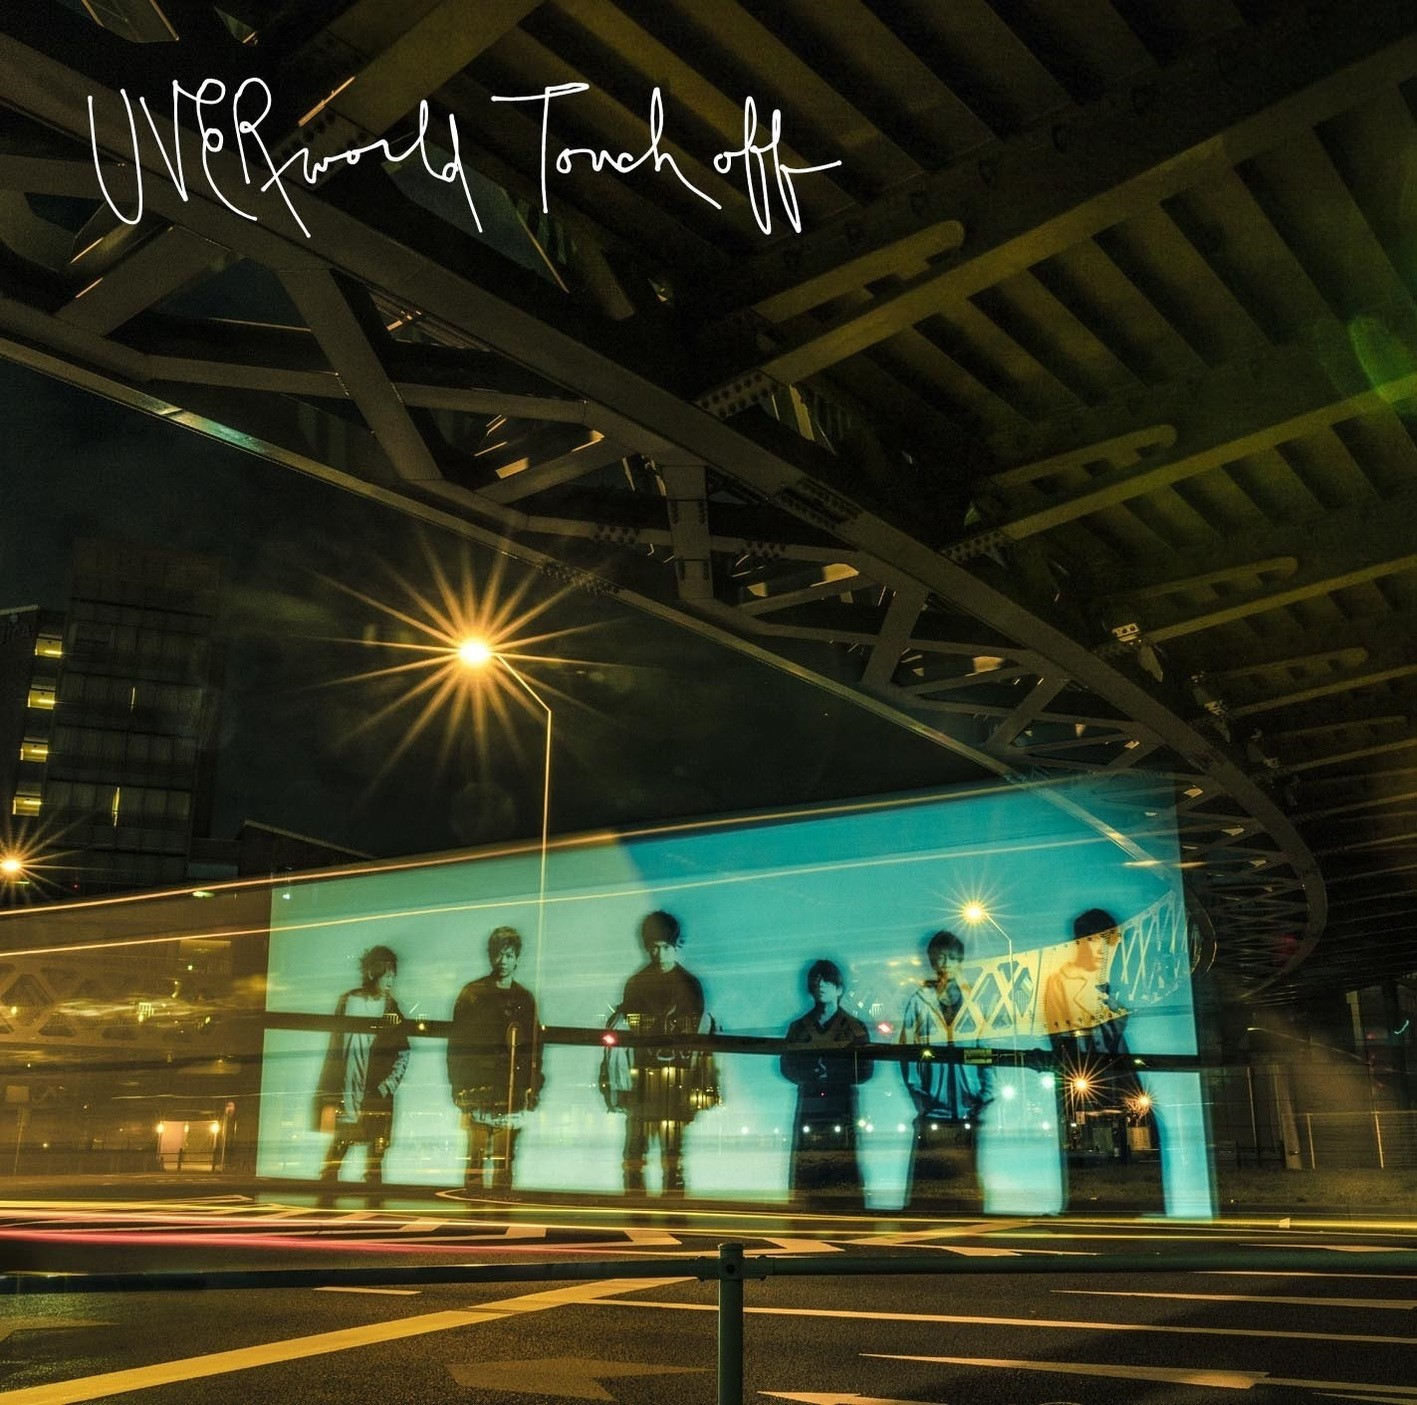 UVERworld – Touch off [Mora FLAC 24bit/96kHz]